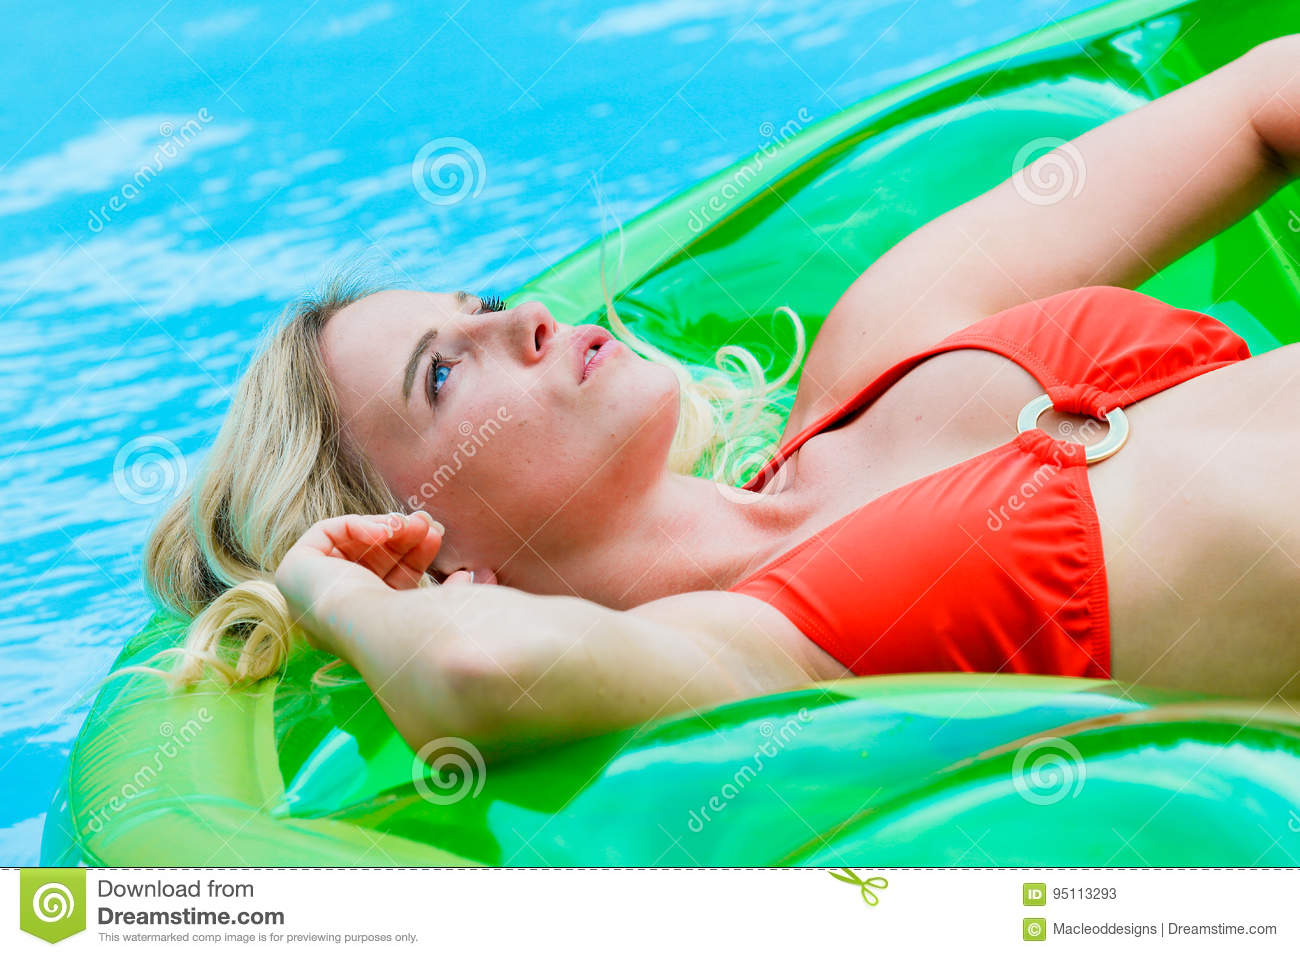 Blond girl on inflatable in pool